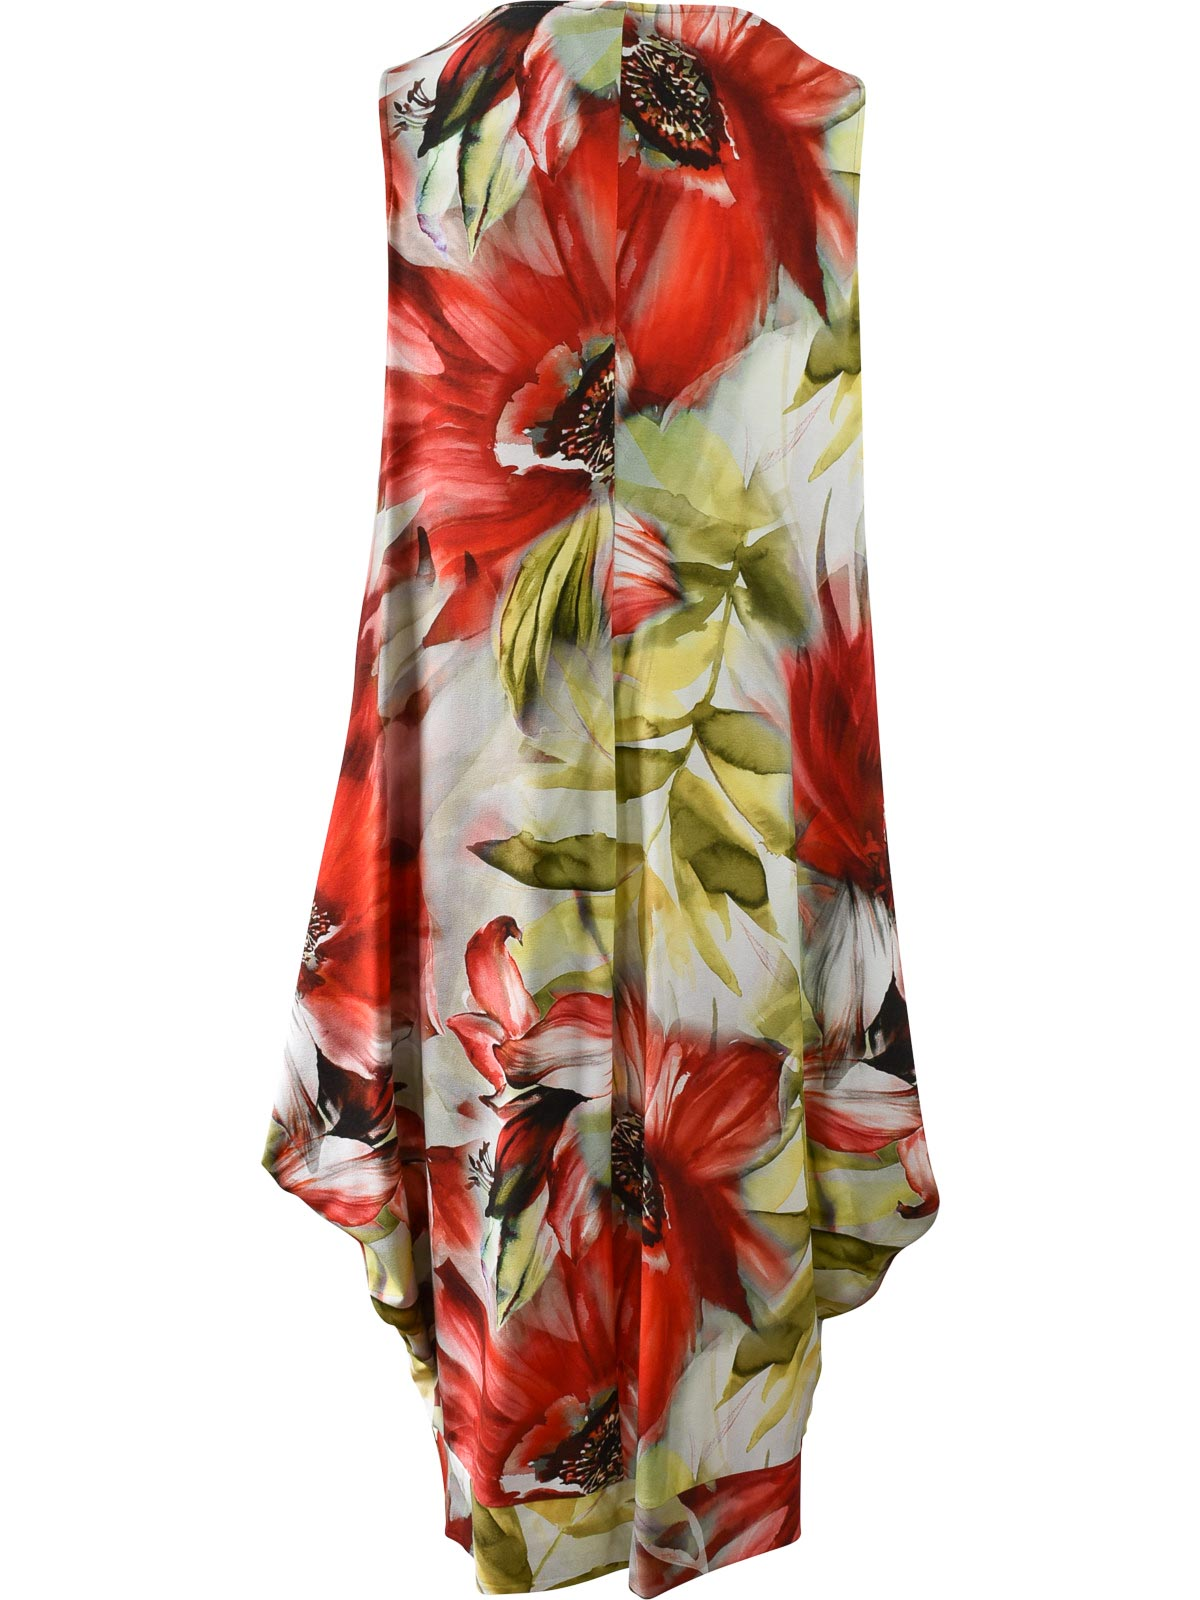 Q'Neel Sleeveless Floral V-Neck Pocket Dress, Red Multi